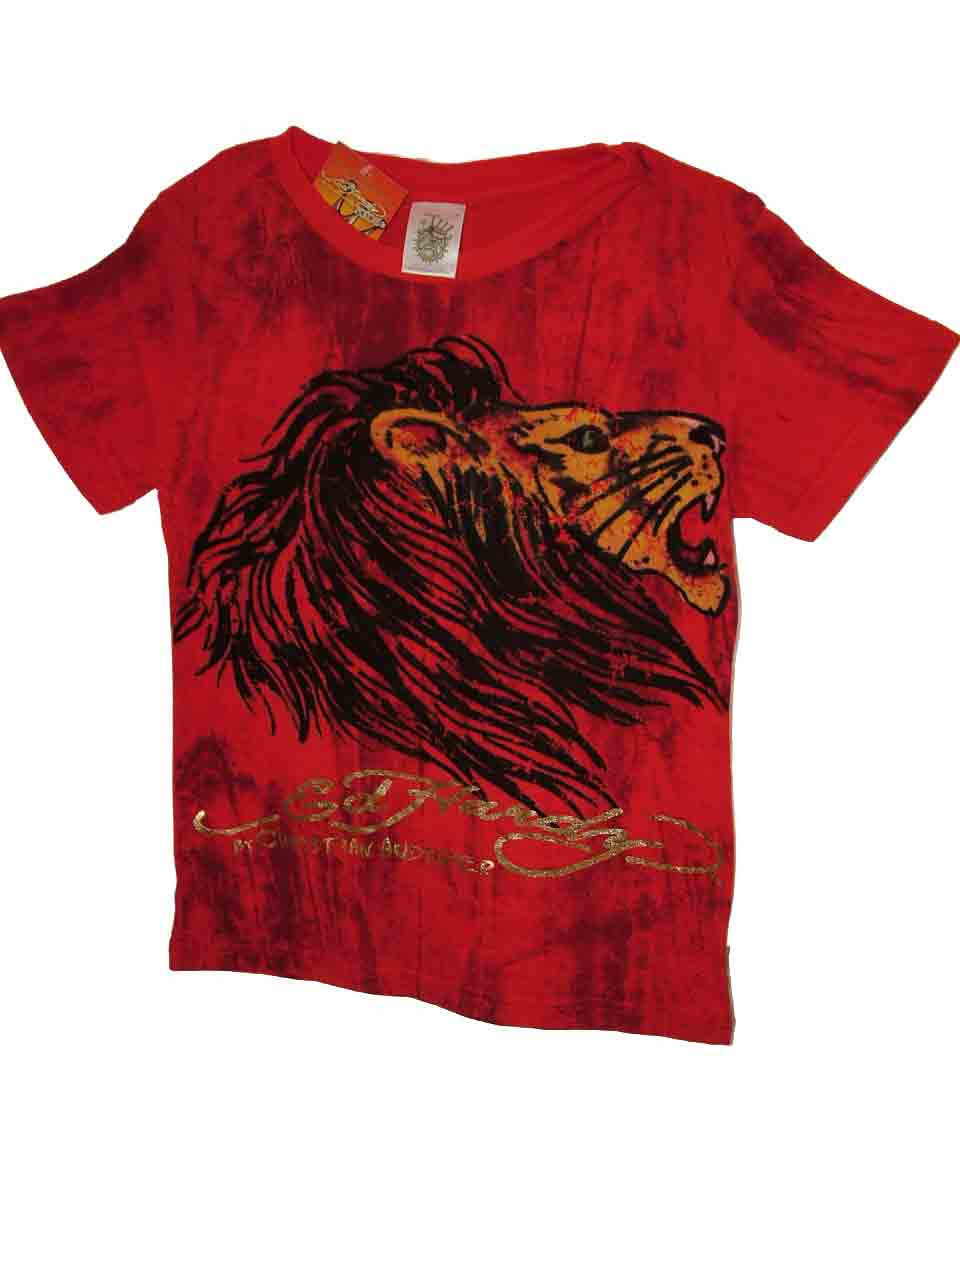 Image 2 of Ed Hardy Boys Bright Red Cotton Marble Tee Shirt - Lion Motif, Short Sleeve